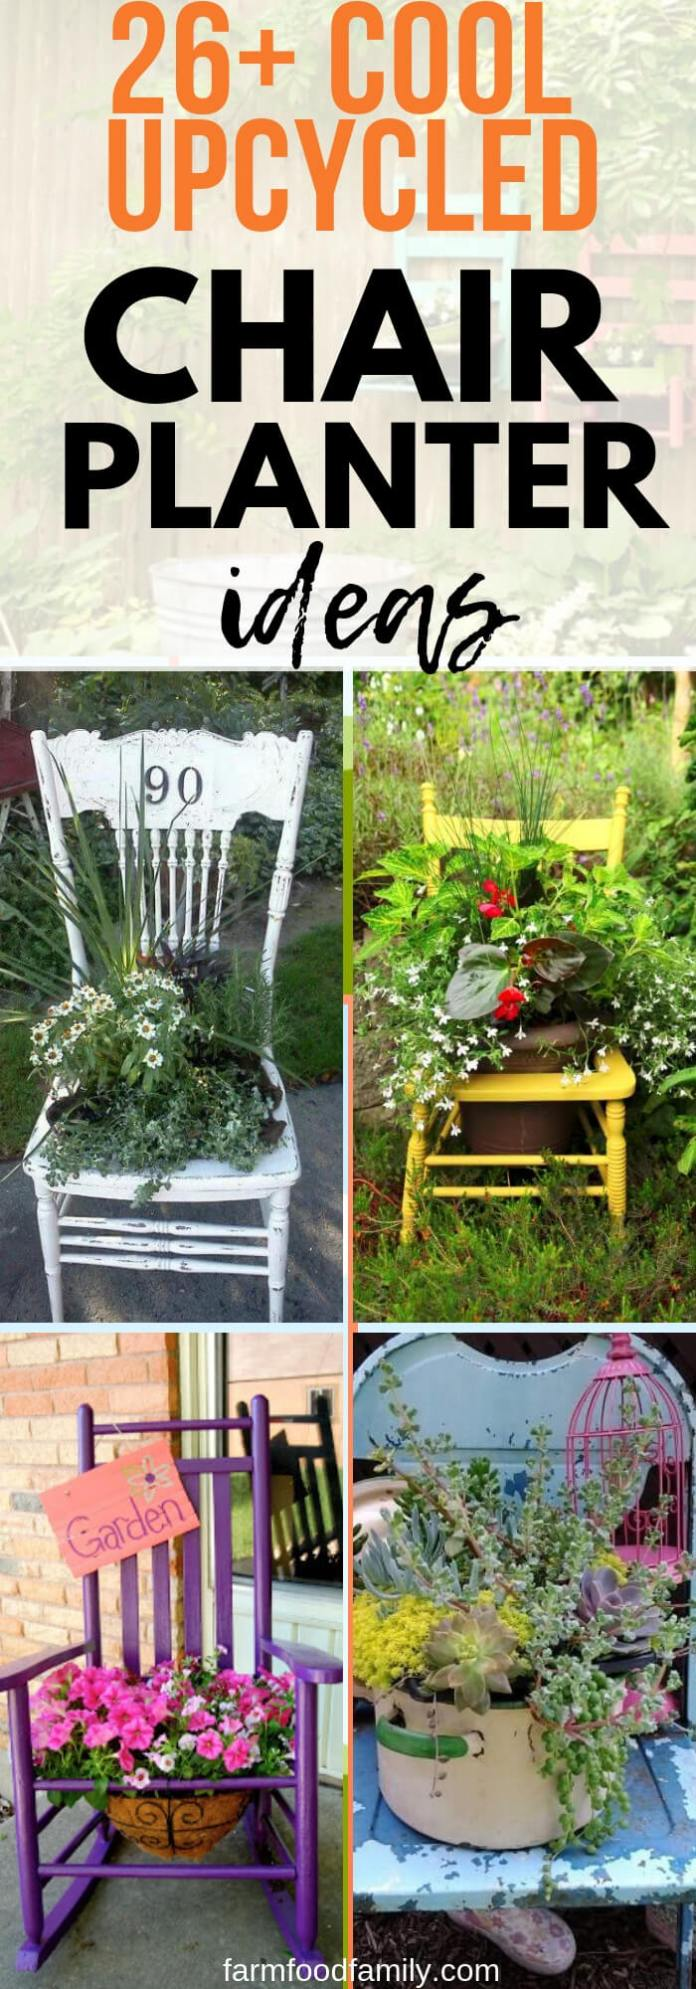 Best Upcycled DIY Chair Planter Ideas For Your Garden